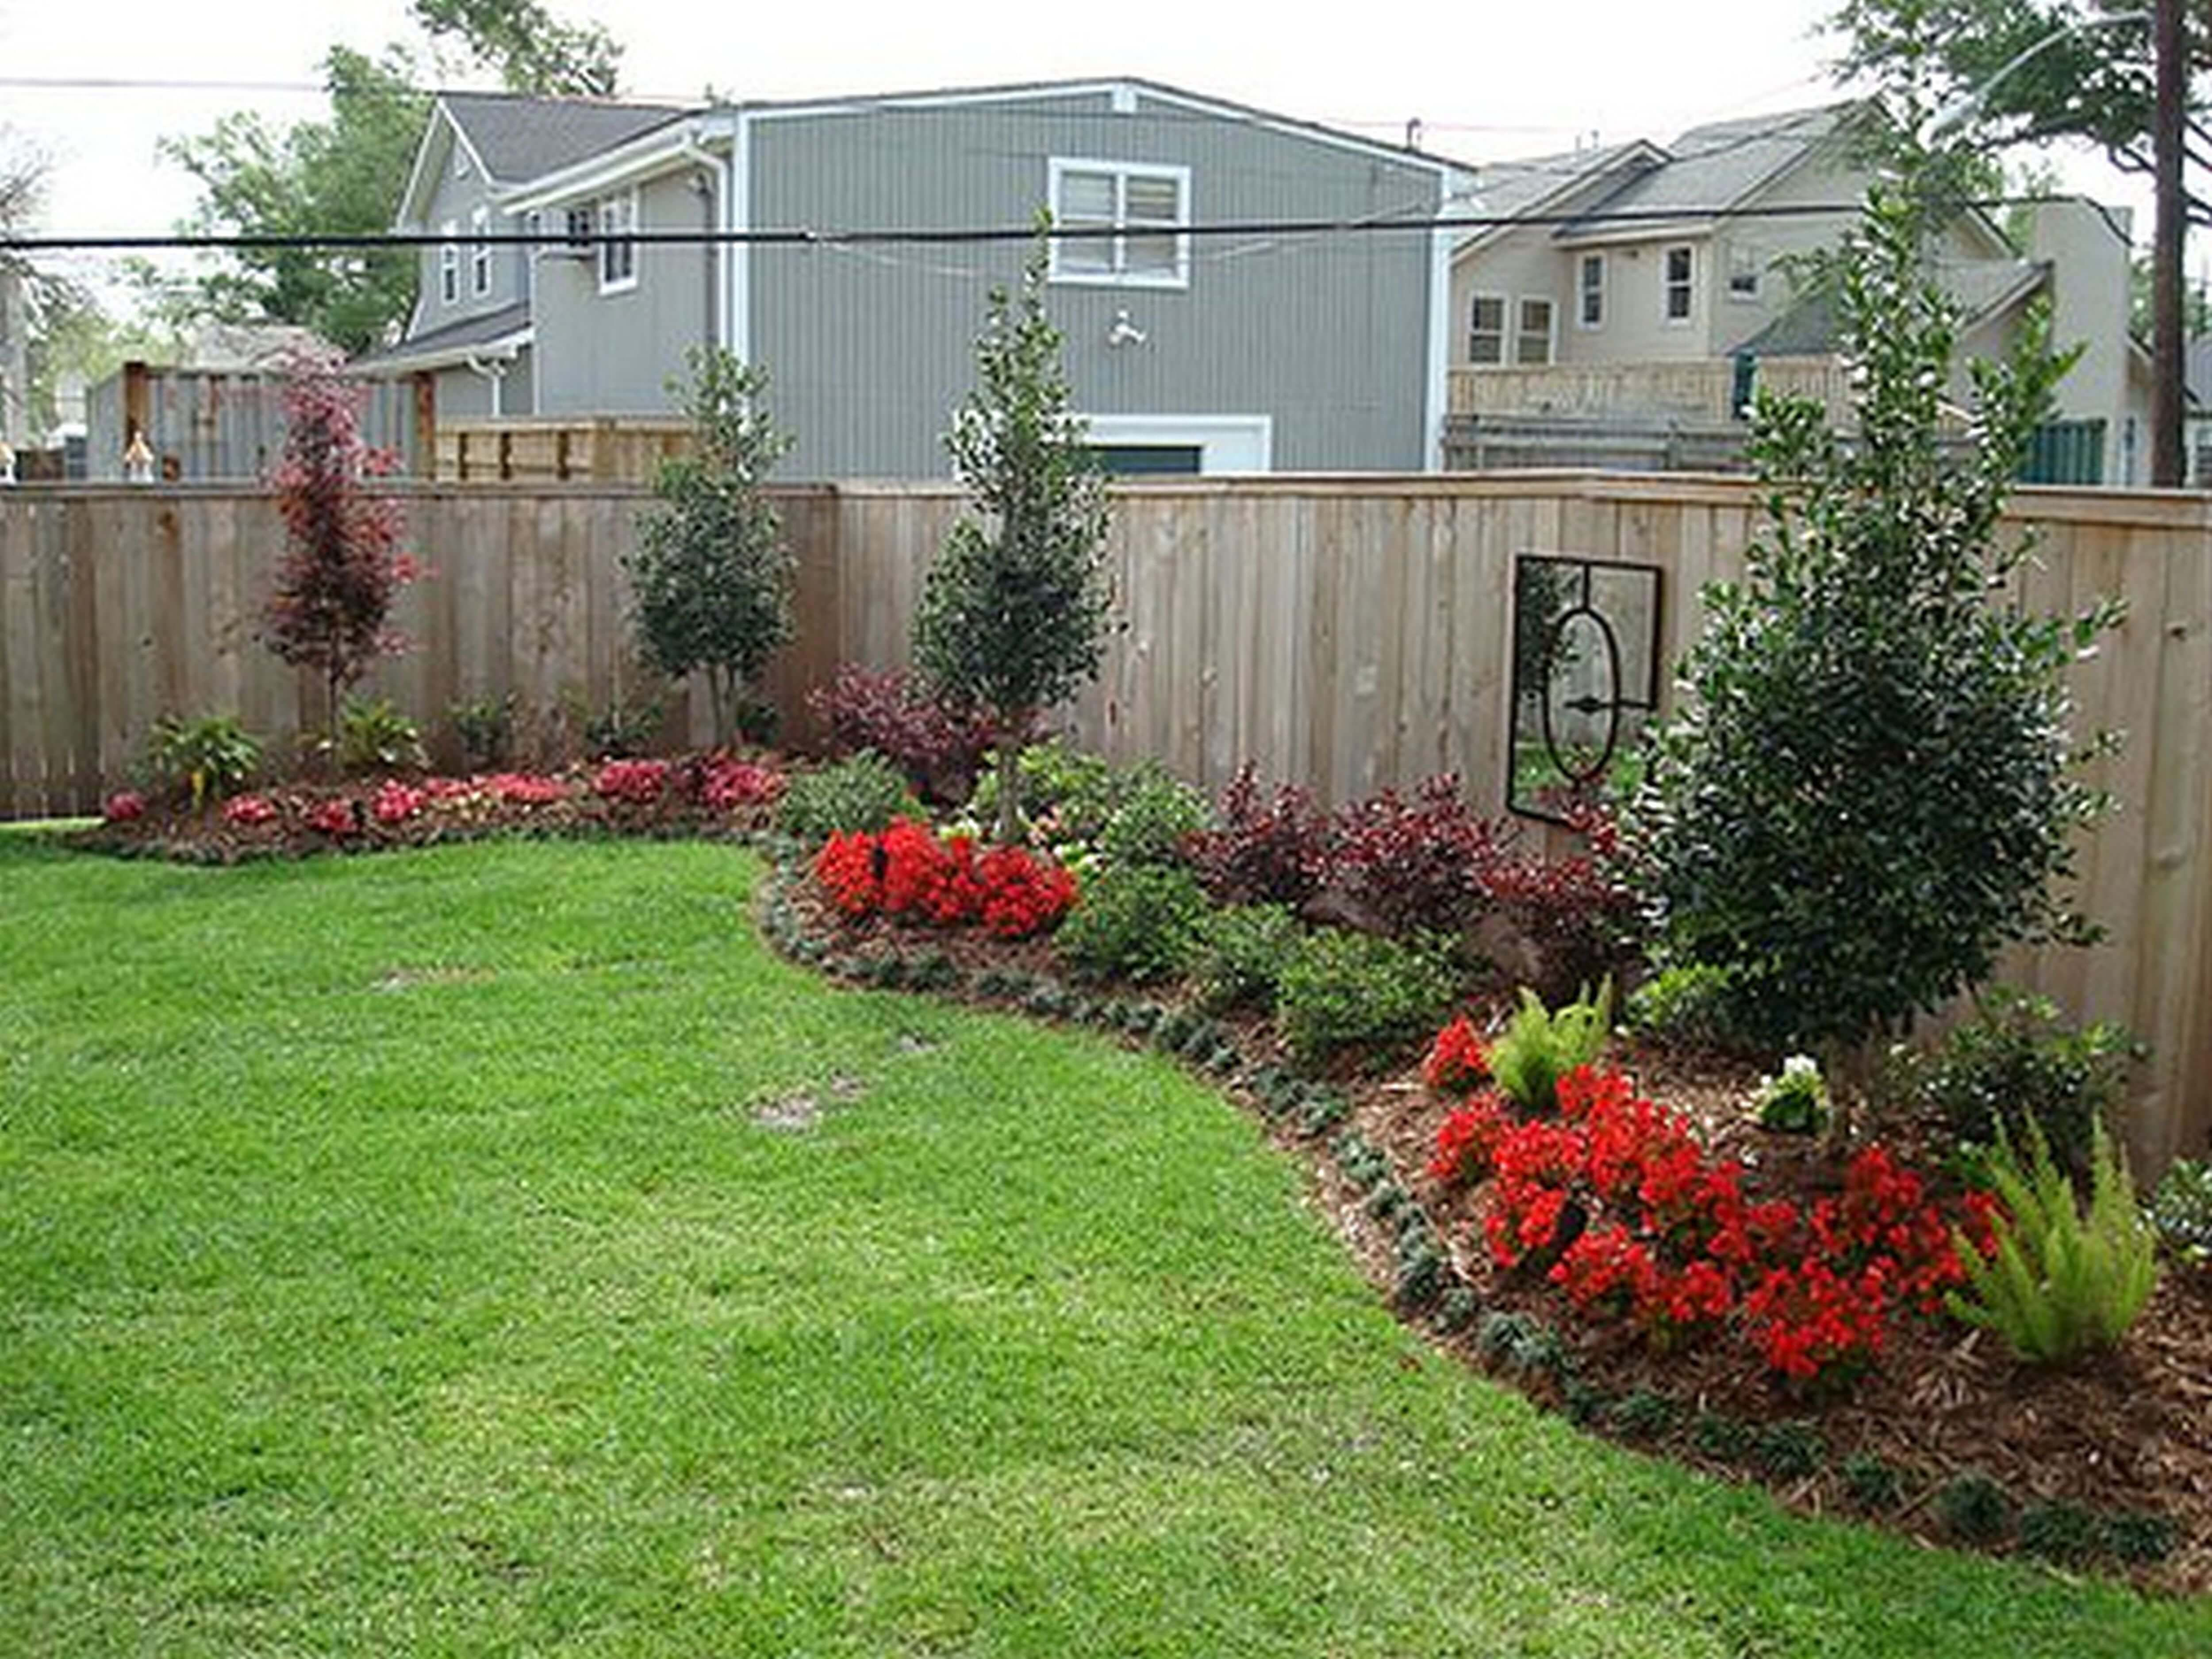 Forgotten Simple landscaping ideas